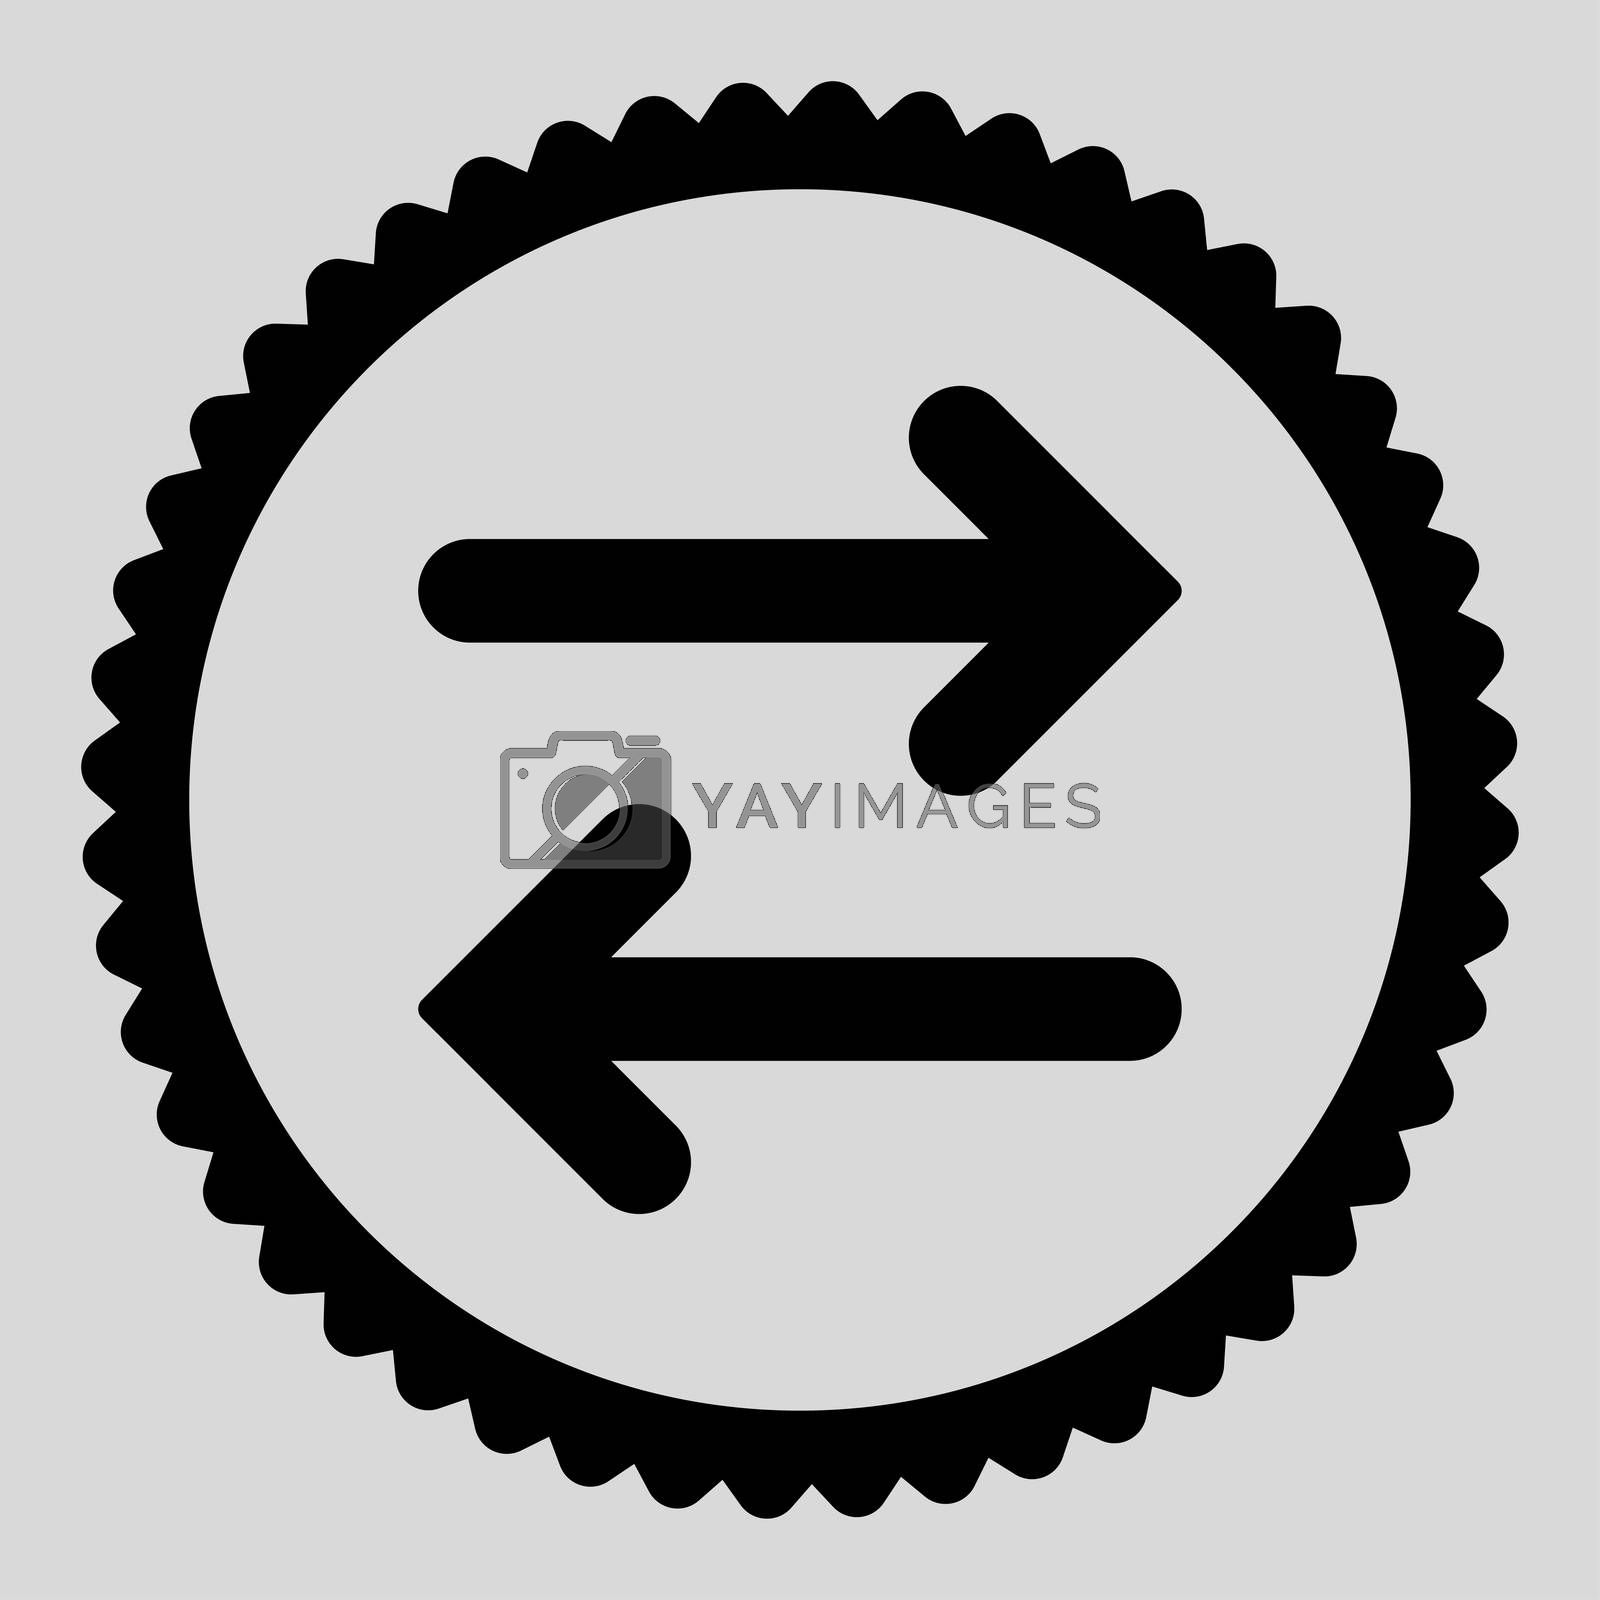 Flip Horizontal flat black color round stamp icon by Aha-Soft